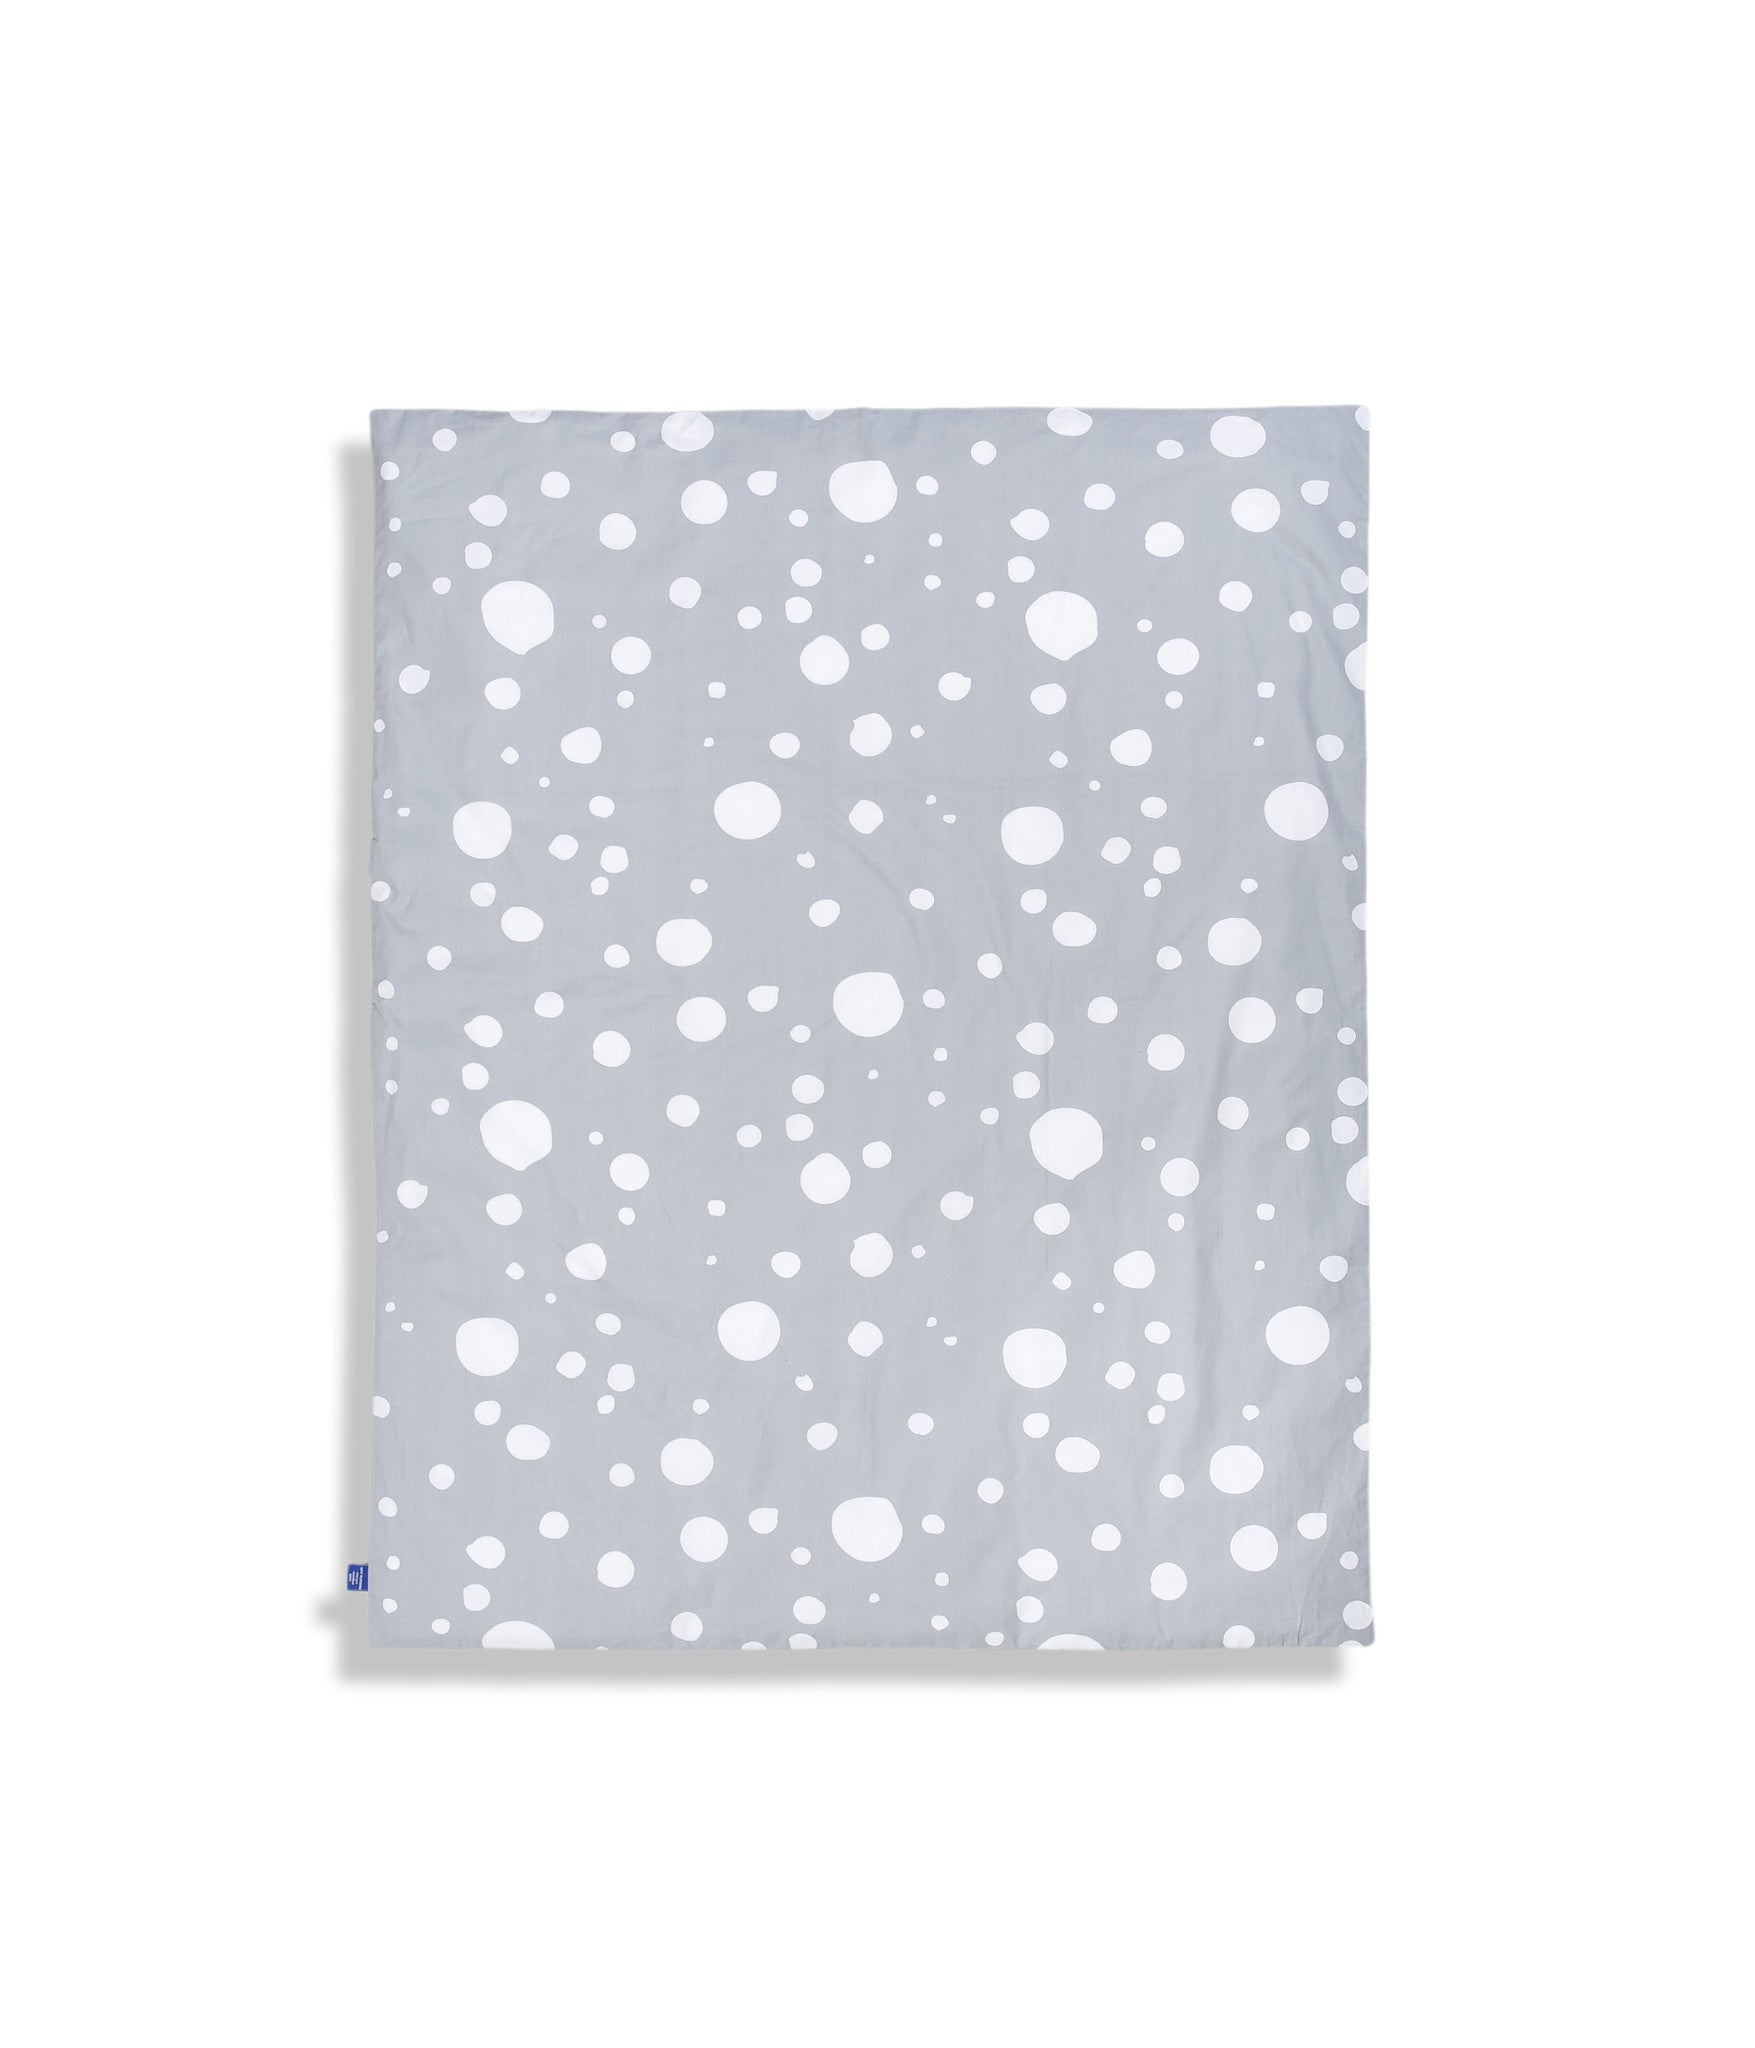 Organic cotton cot bed duvet cover. Baby bedding. Grey colour. Dotted pattern bed linen.